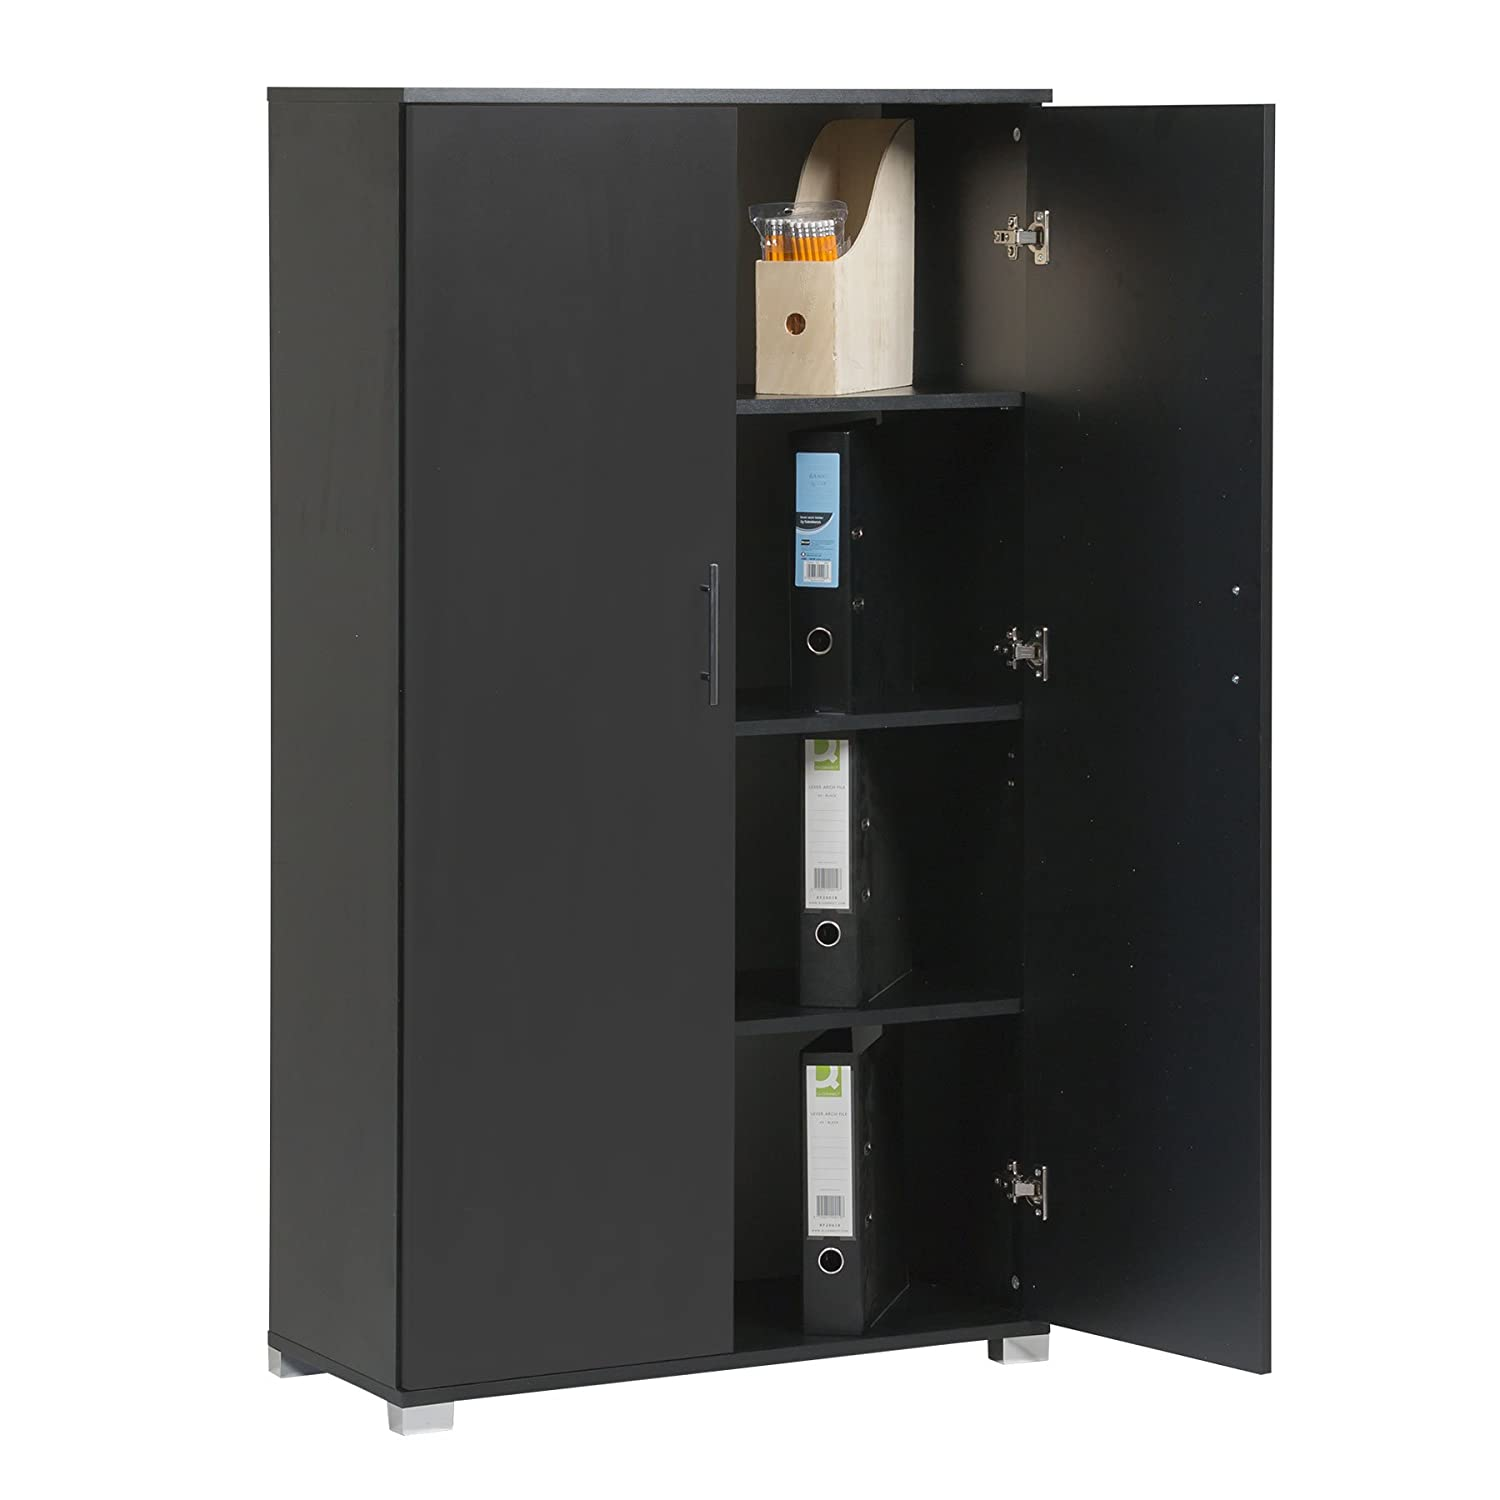 Black Office Cupboard Filing Storage Stationary Cabinet - Office Furniture, 4 Storage Shelves - 2 Door Cabinet - 800mm Wide - Massive Storage Capacity - 40 x A4 Box File Capacity MMT